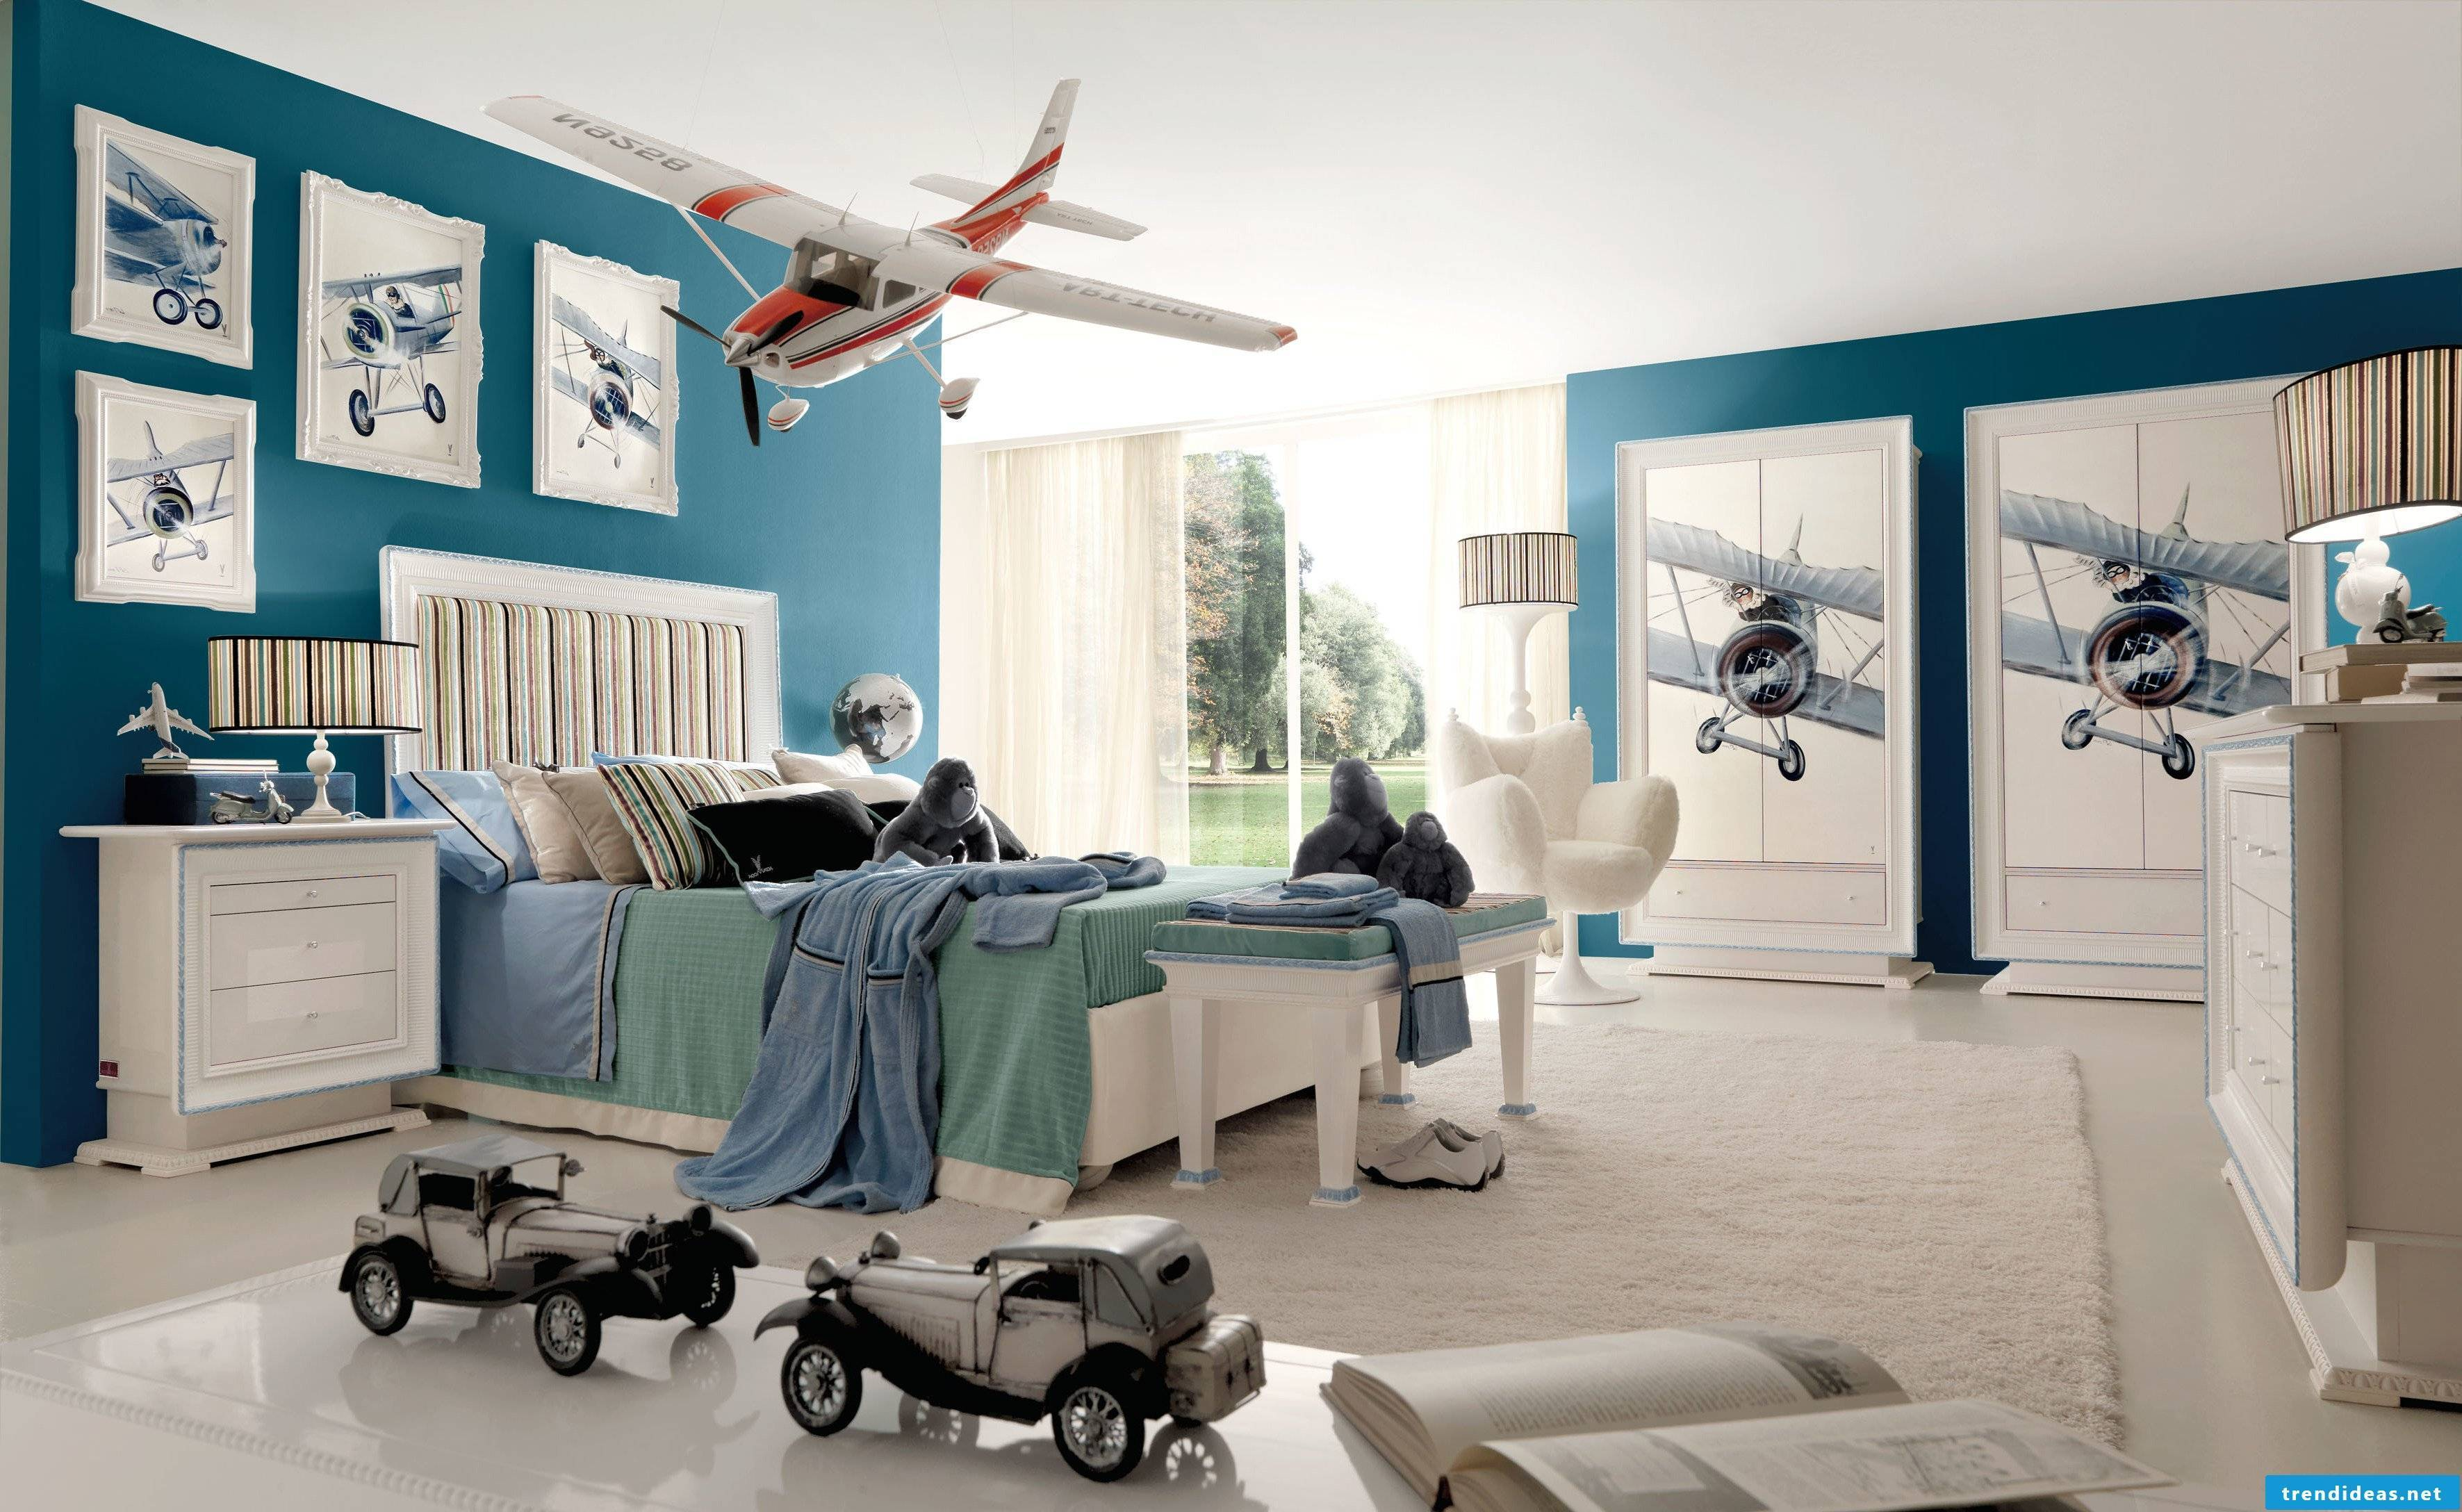 The modern aviator nursery